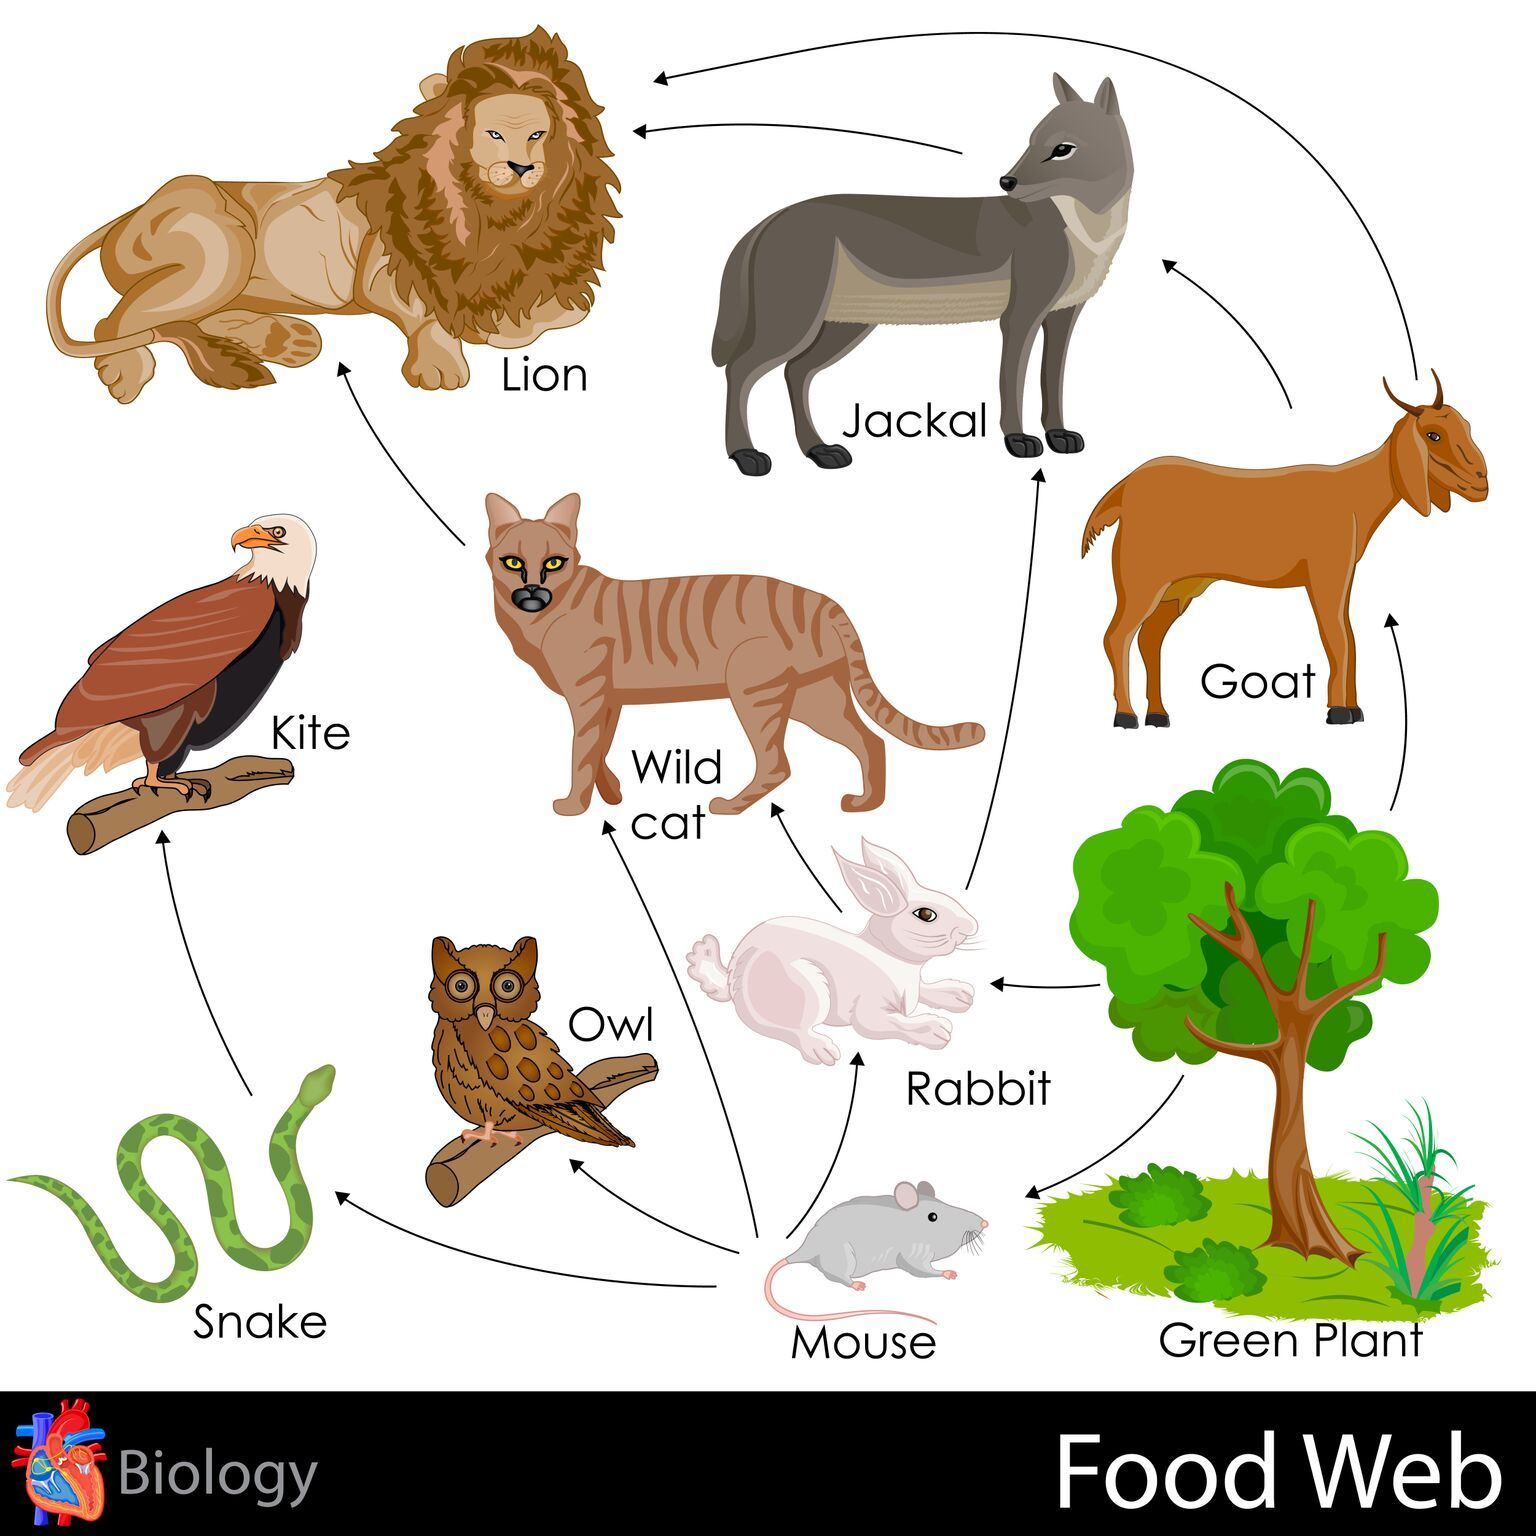 Producers And Consumers Lessons On The Food Web With Eight Engaging Curricula Games On Food Webs In An Ecosyst Food Webs Projects Food Web Food Web Activities